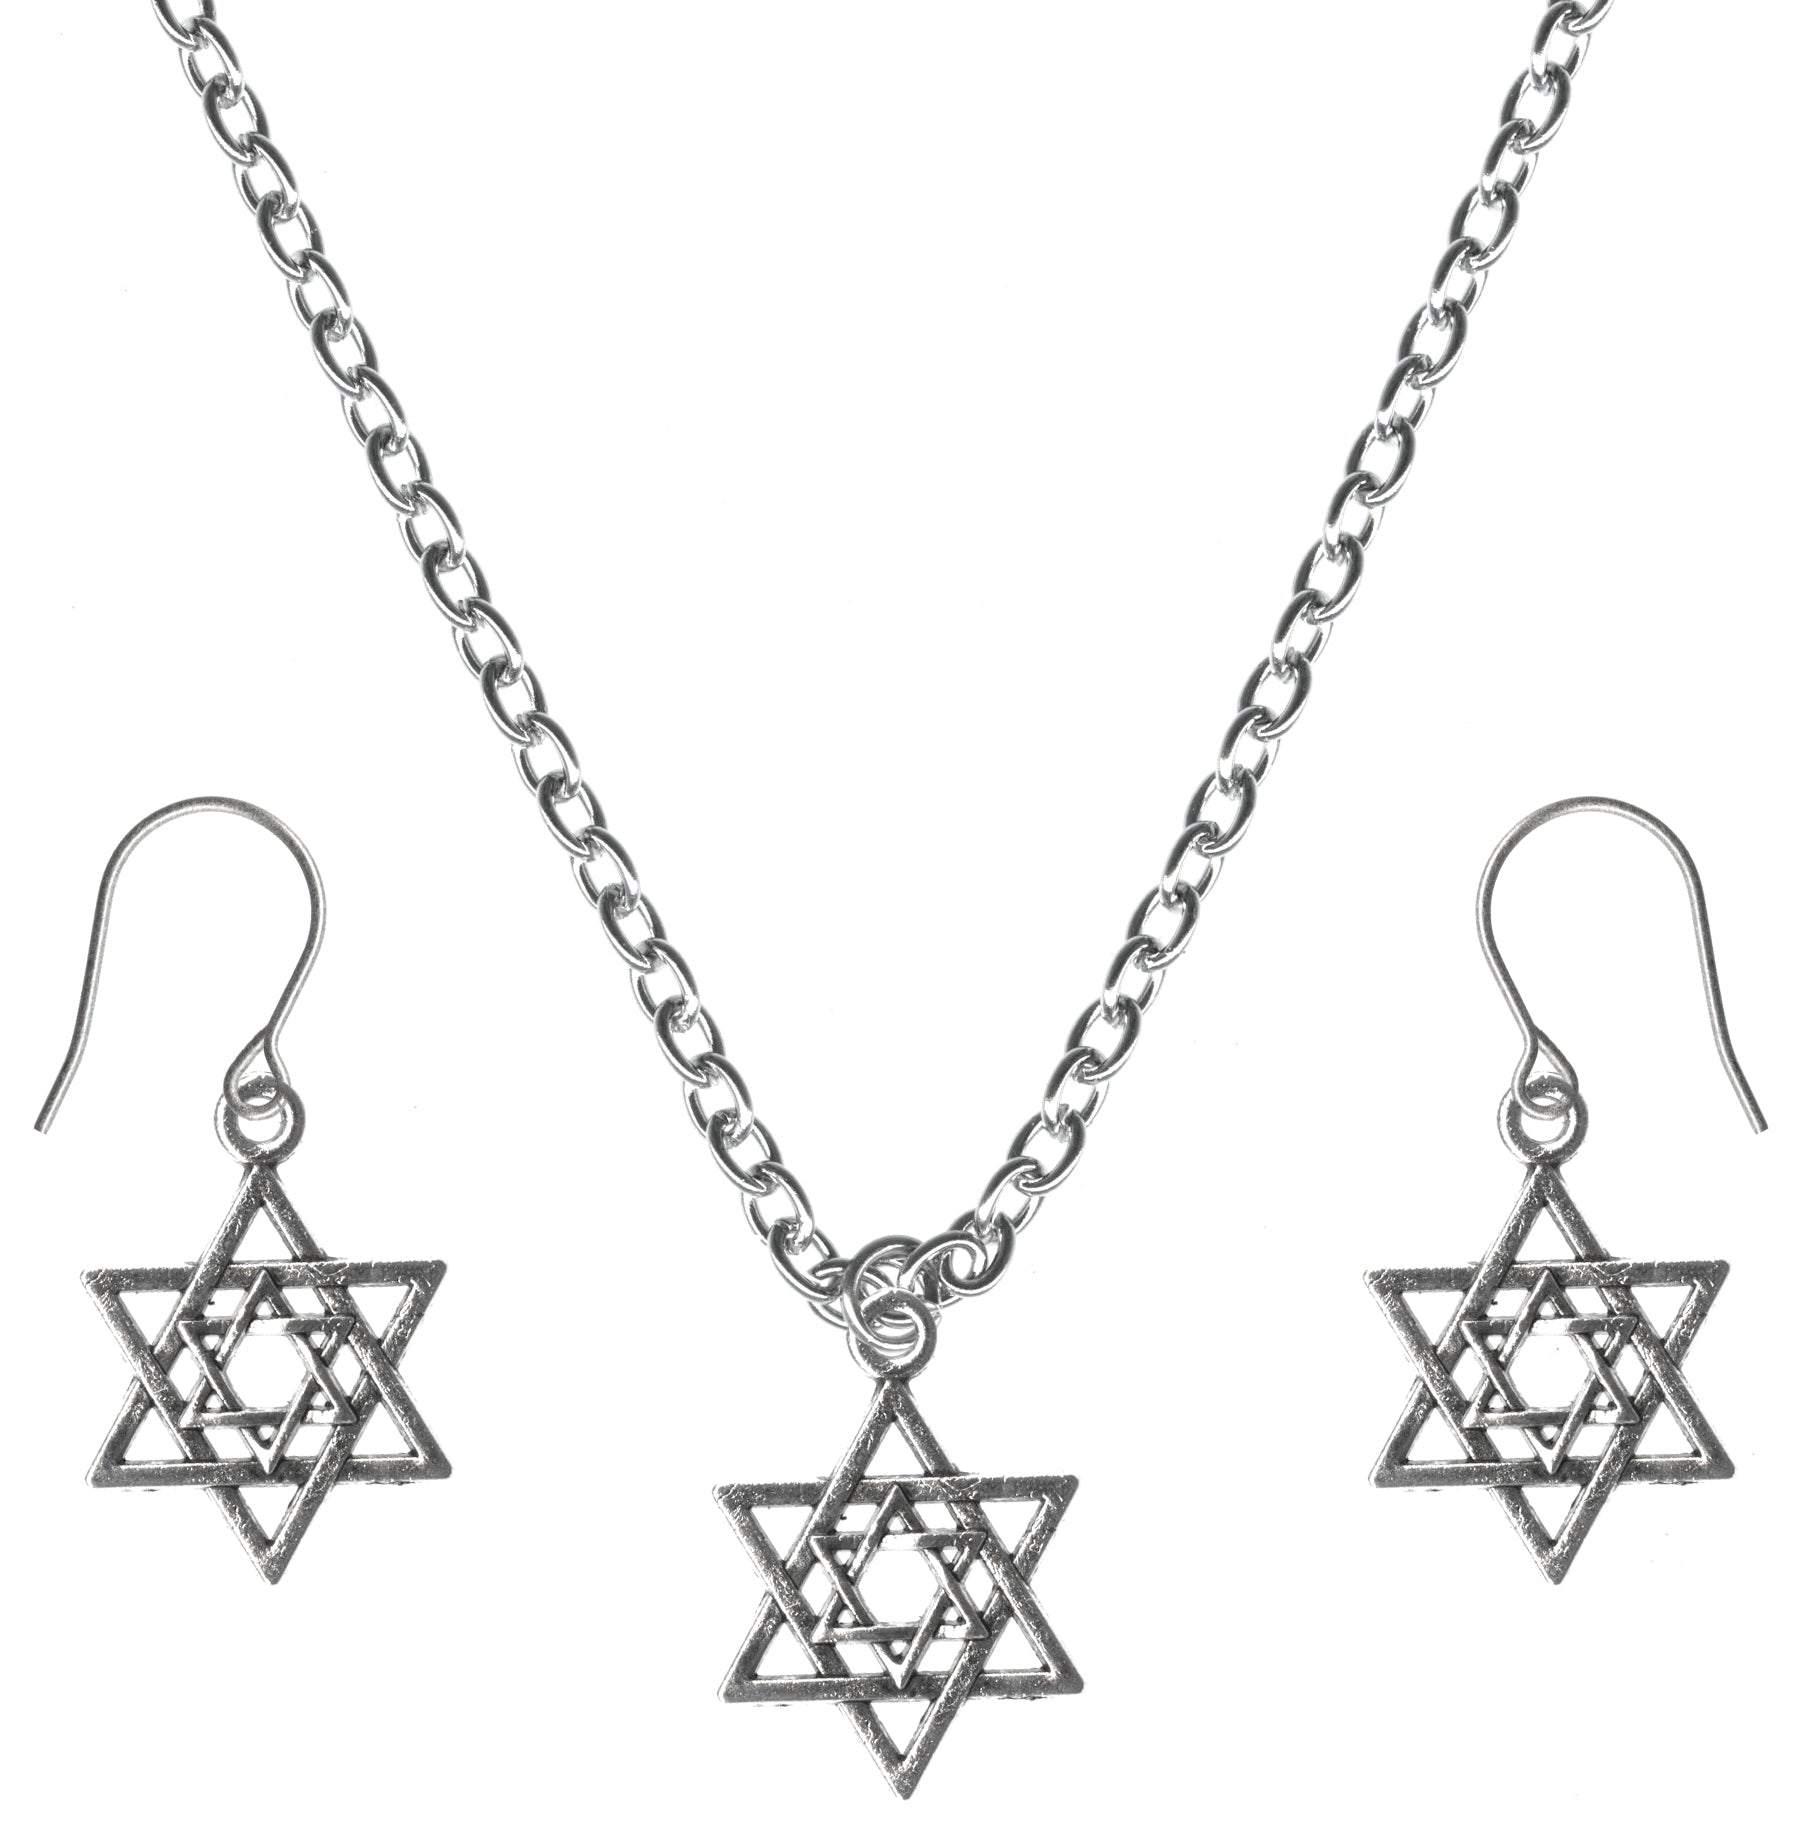 Interlocking Star of David Hexagram Small Charm Steel Chain Necklace and Hypoallergenic Titanium Earrings Set